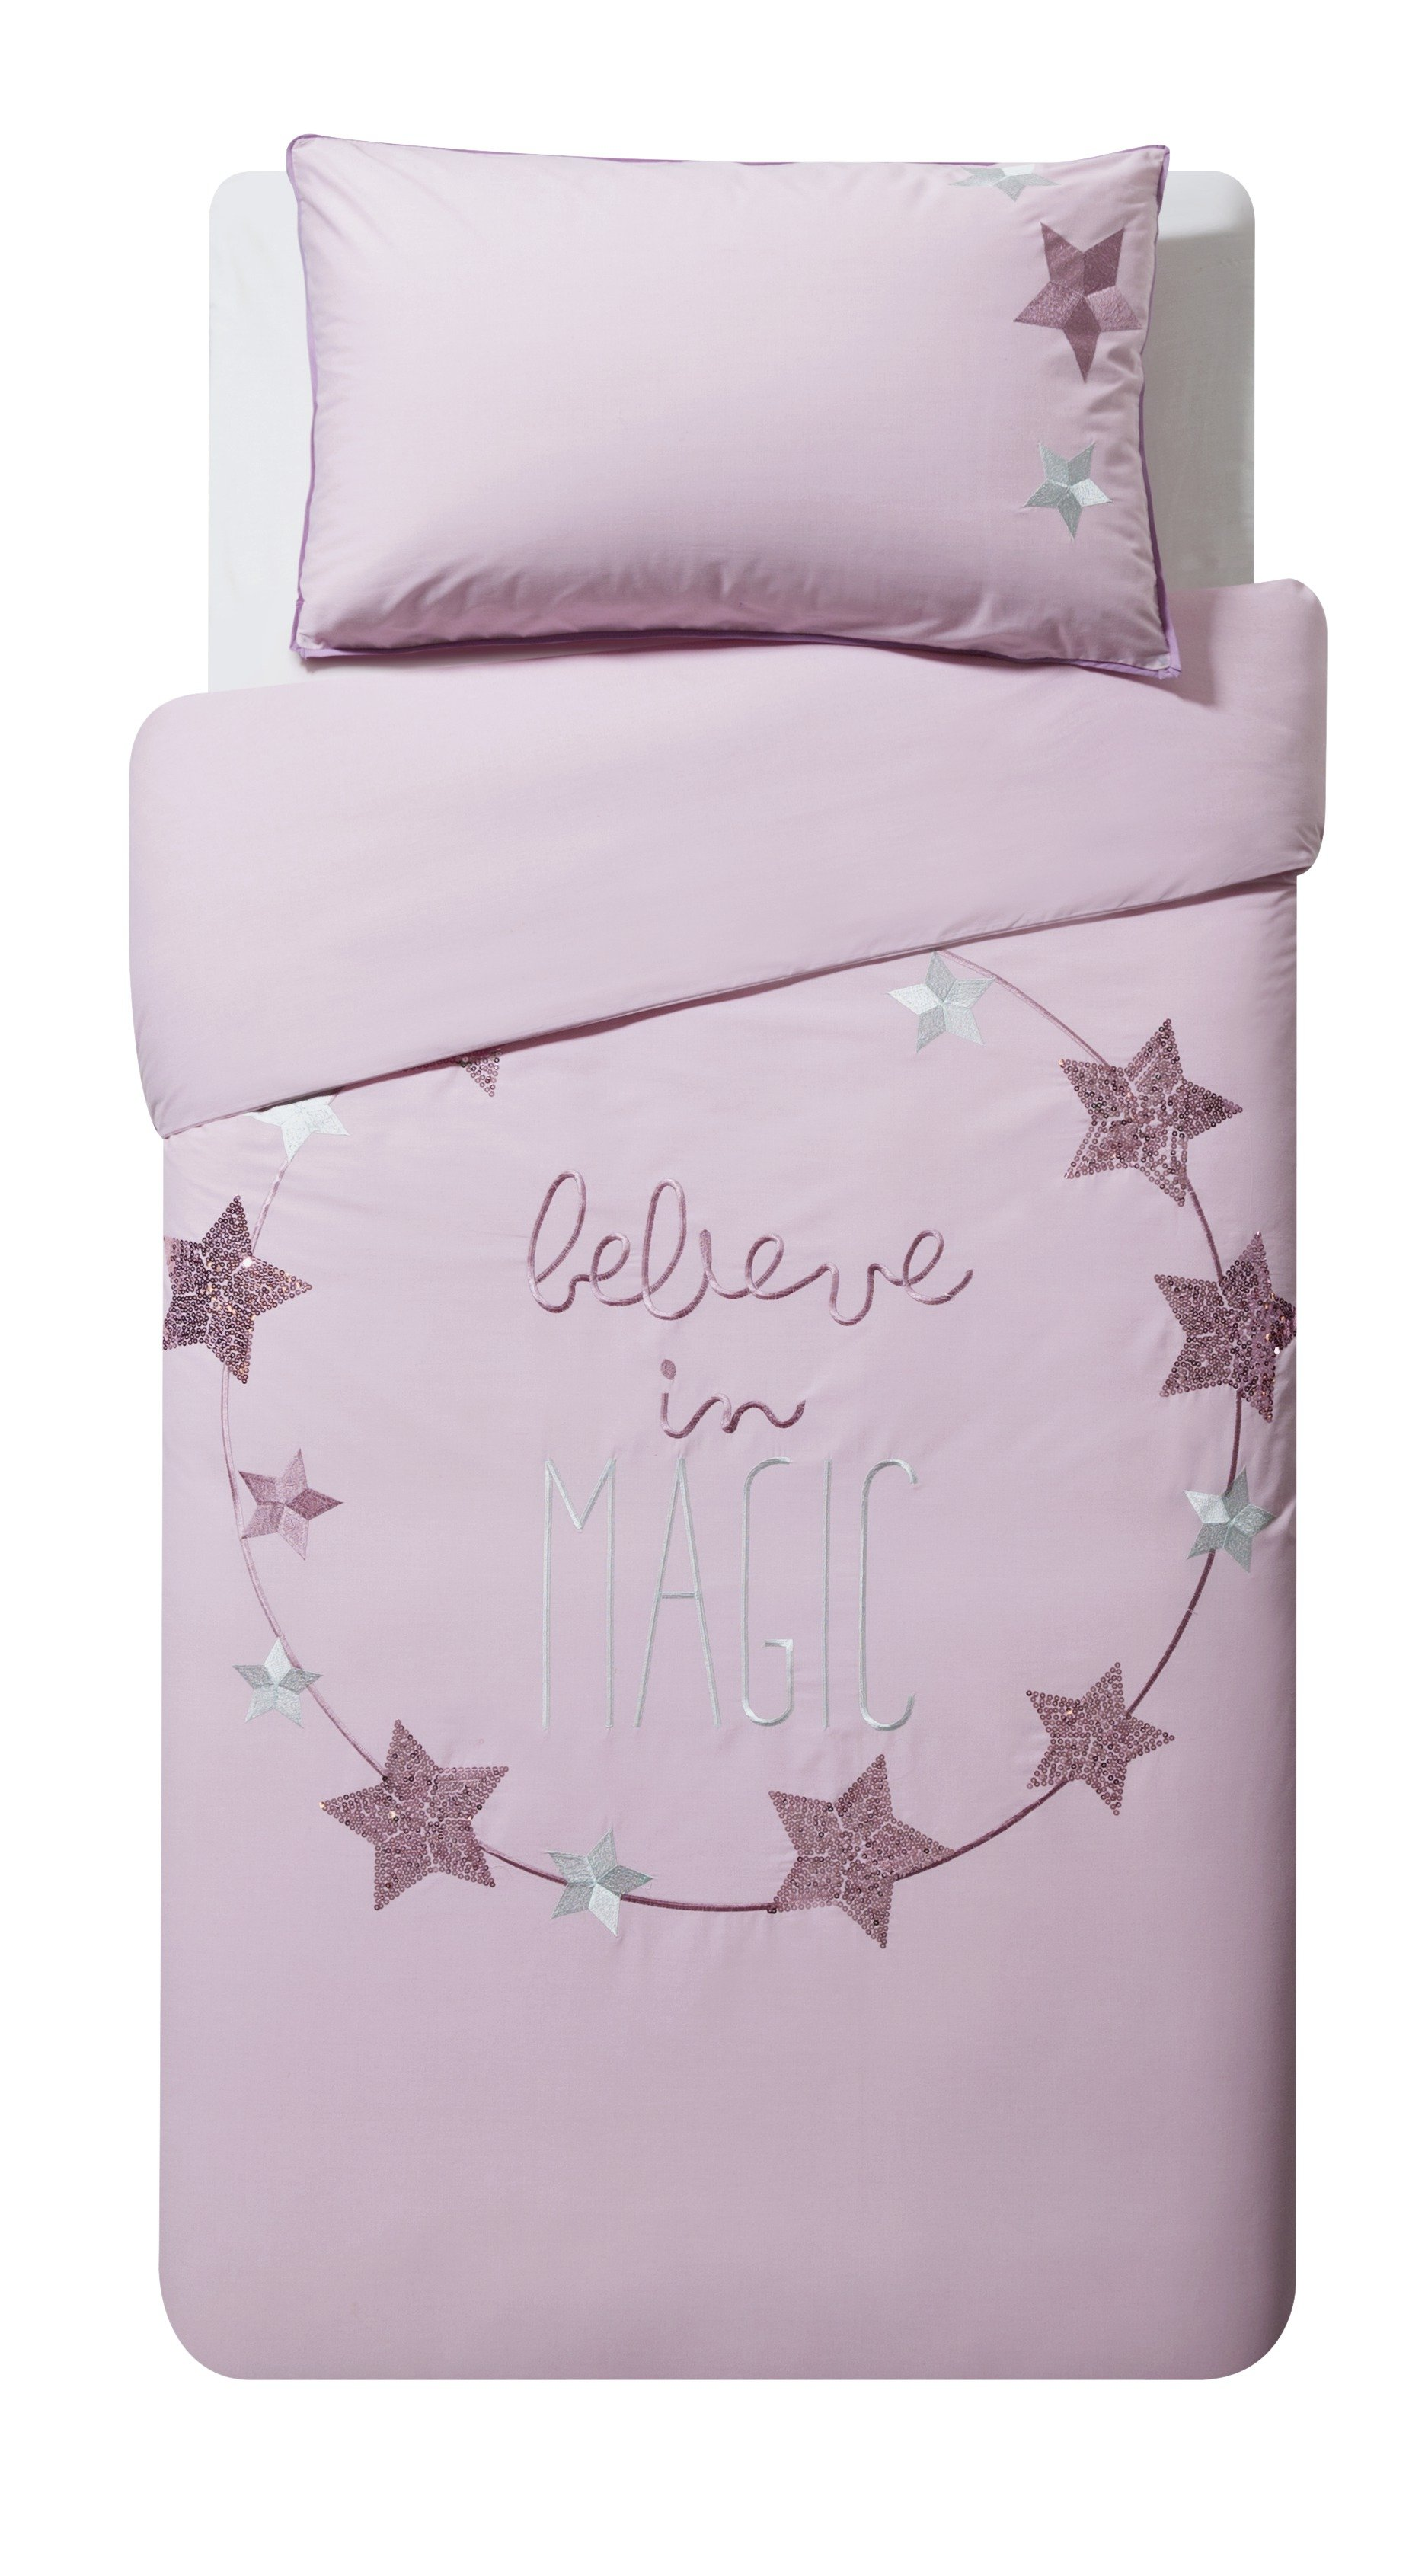 Argos Home Believe Cotton Rich Bedding Set - Toddler